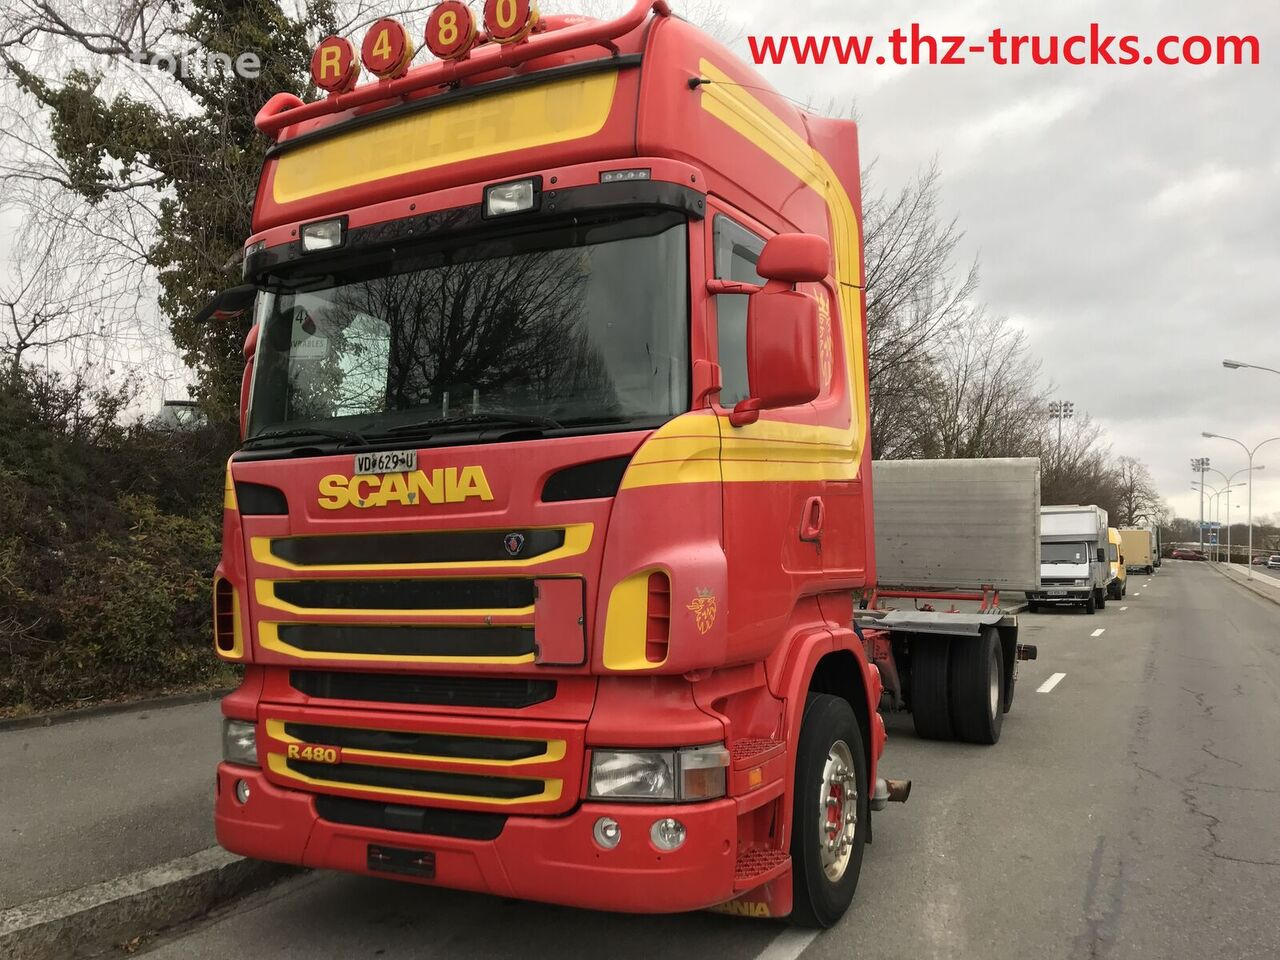 SCANIA R480 chassis truck